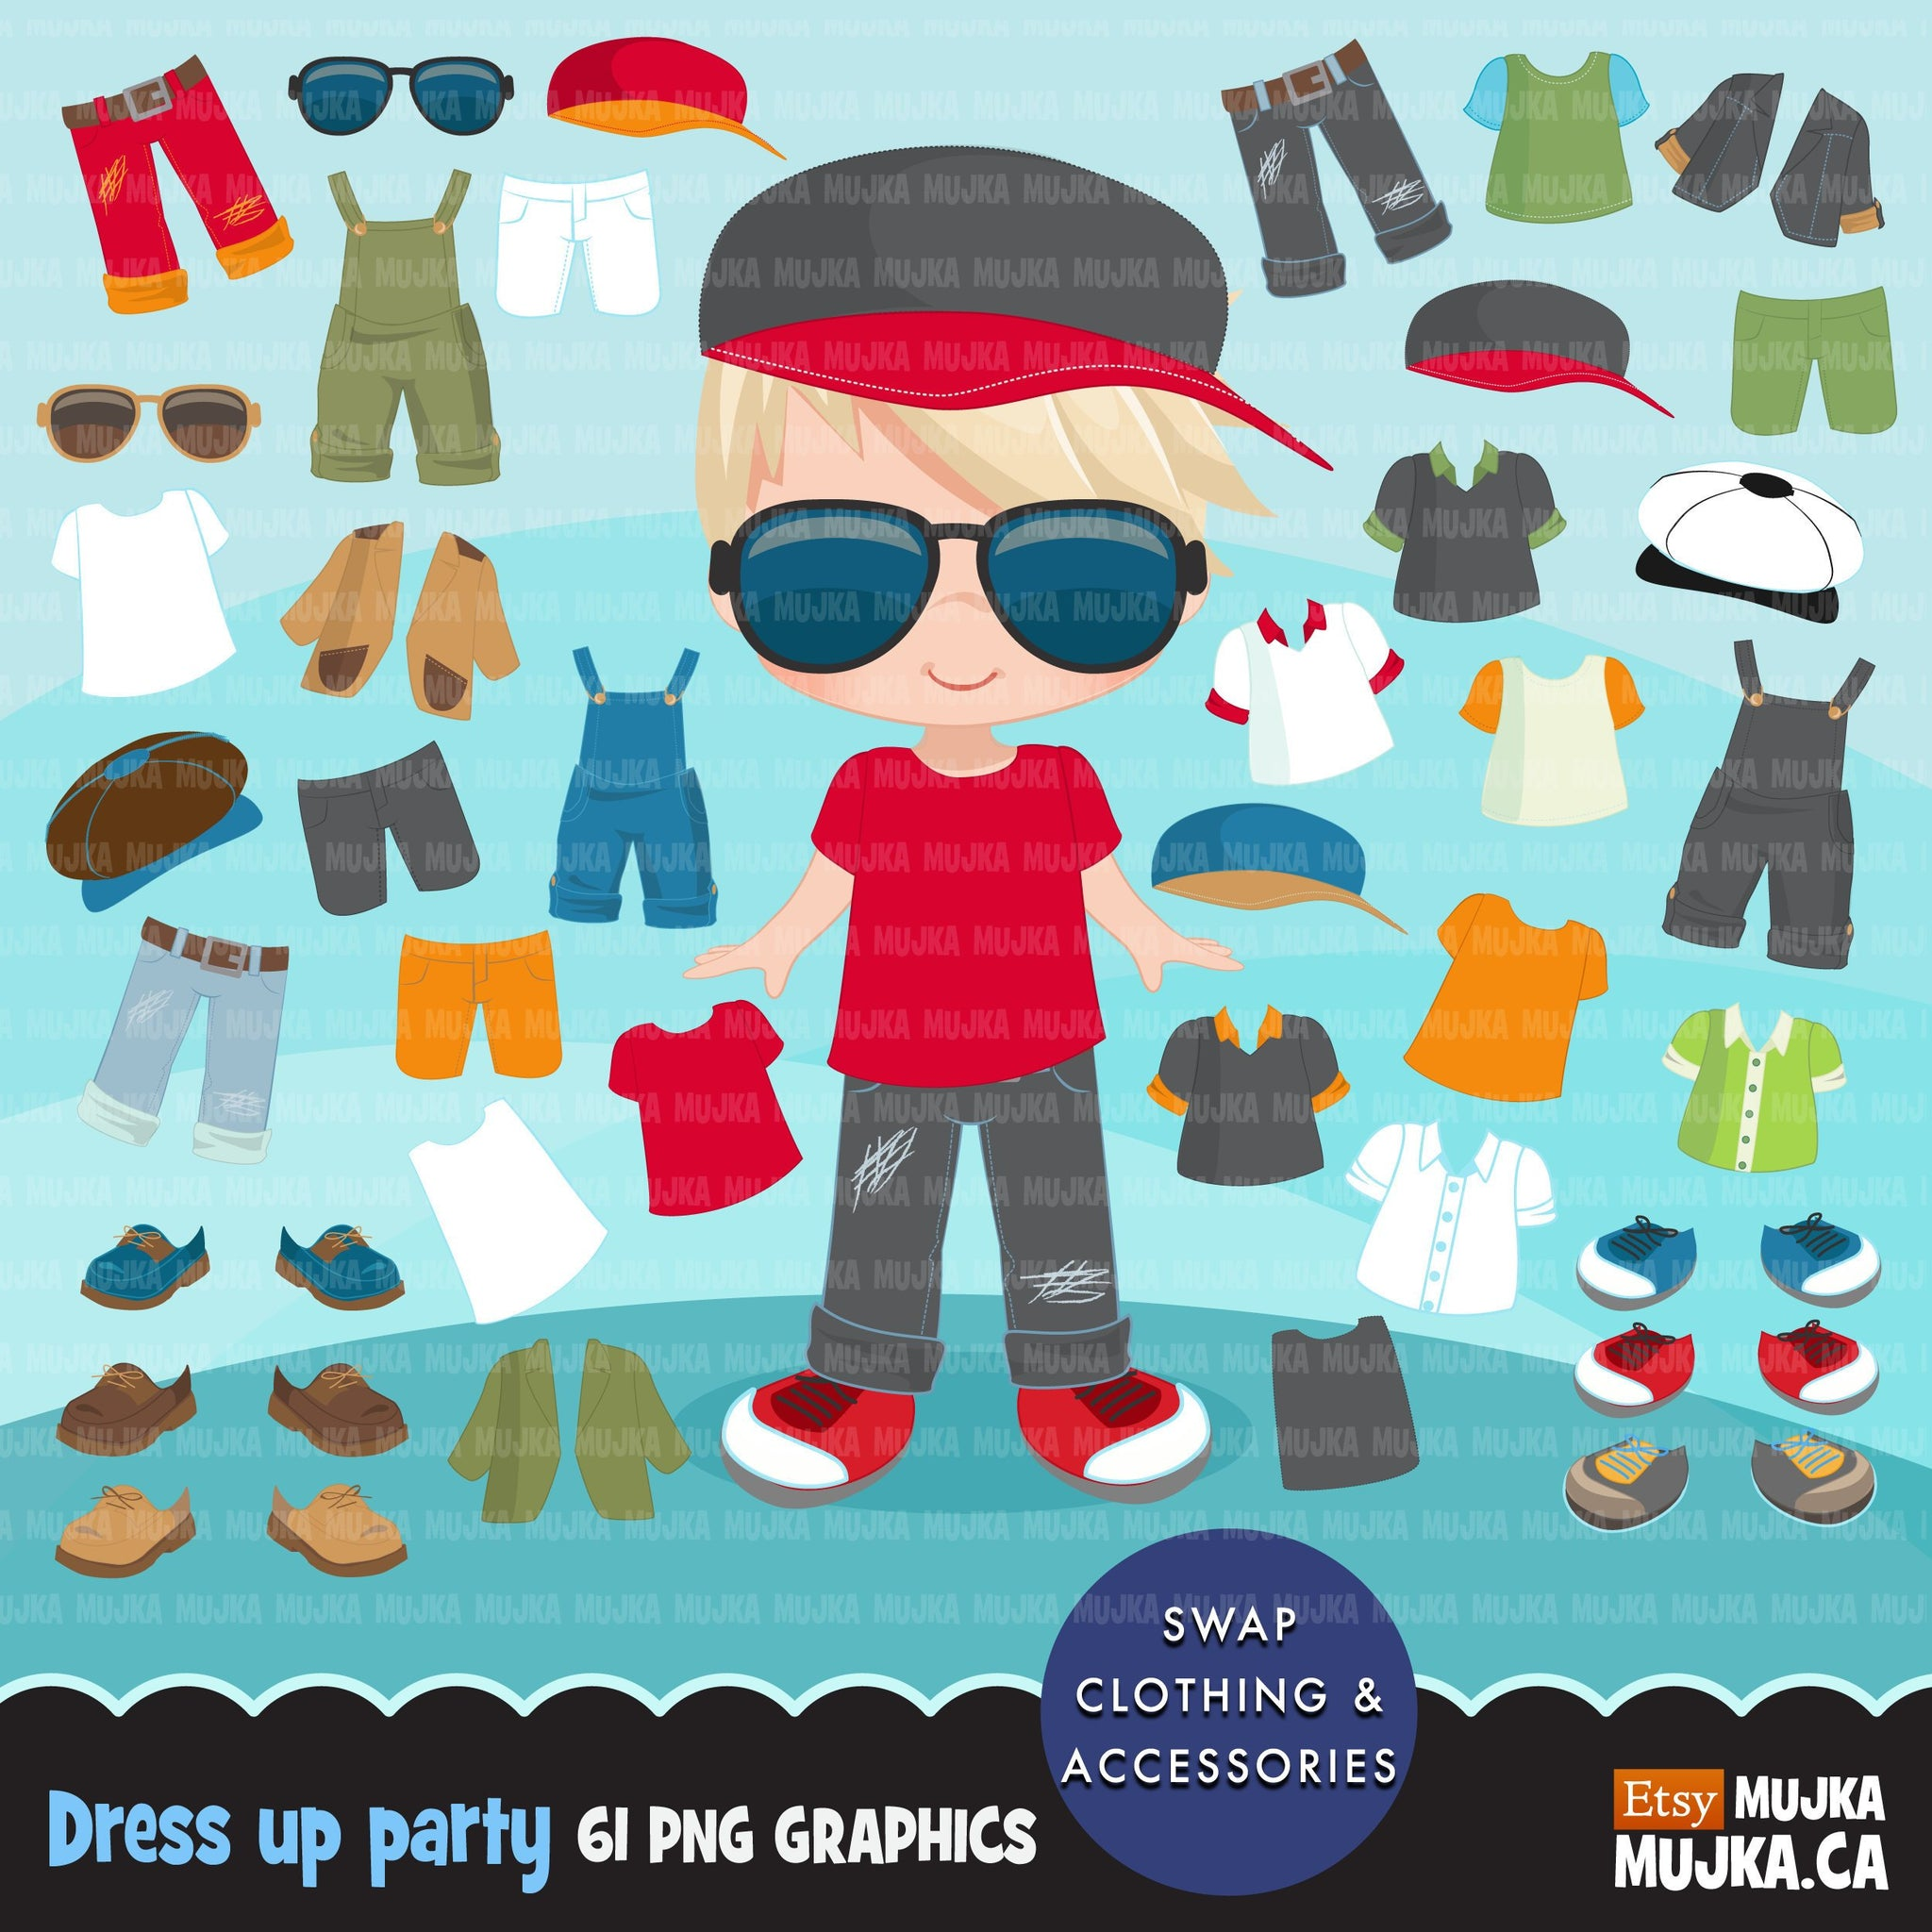 Paper doll clipart, Little Boys Dressing Party Graphics. Cute Characters, summer outfits